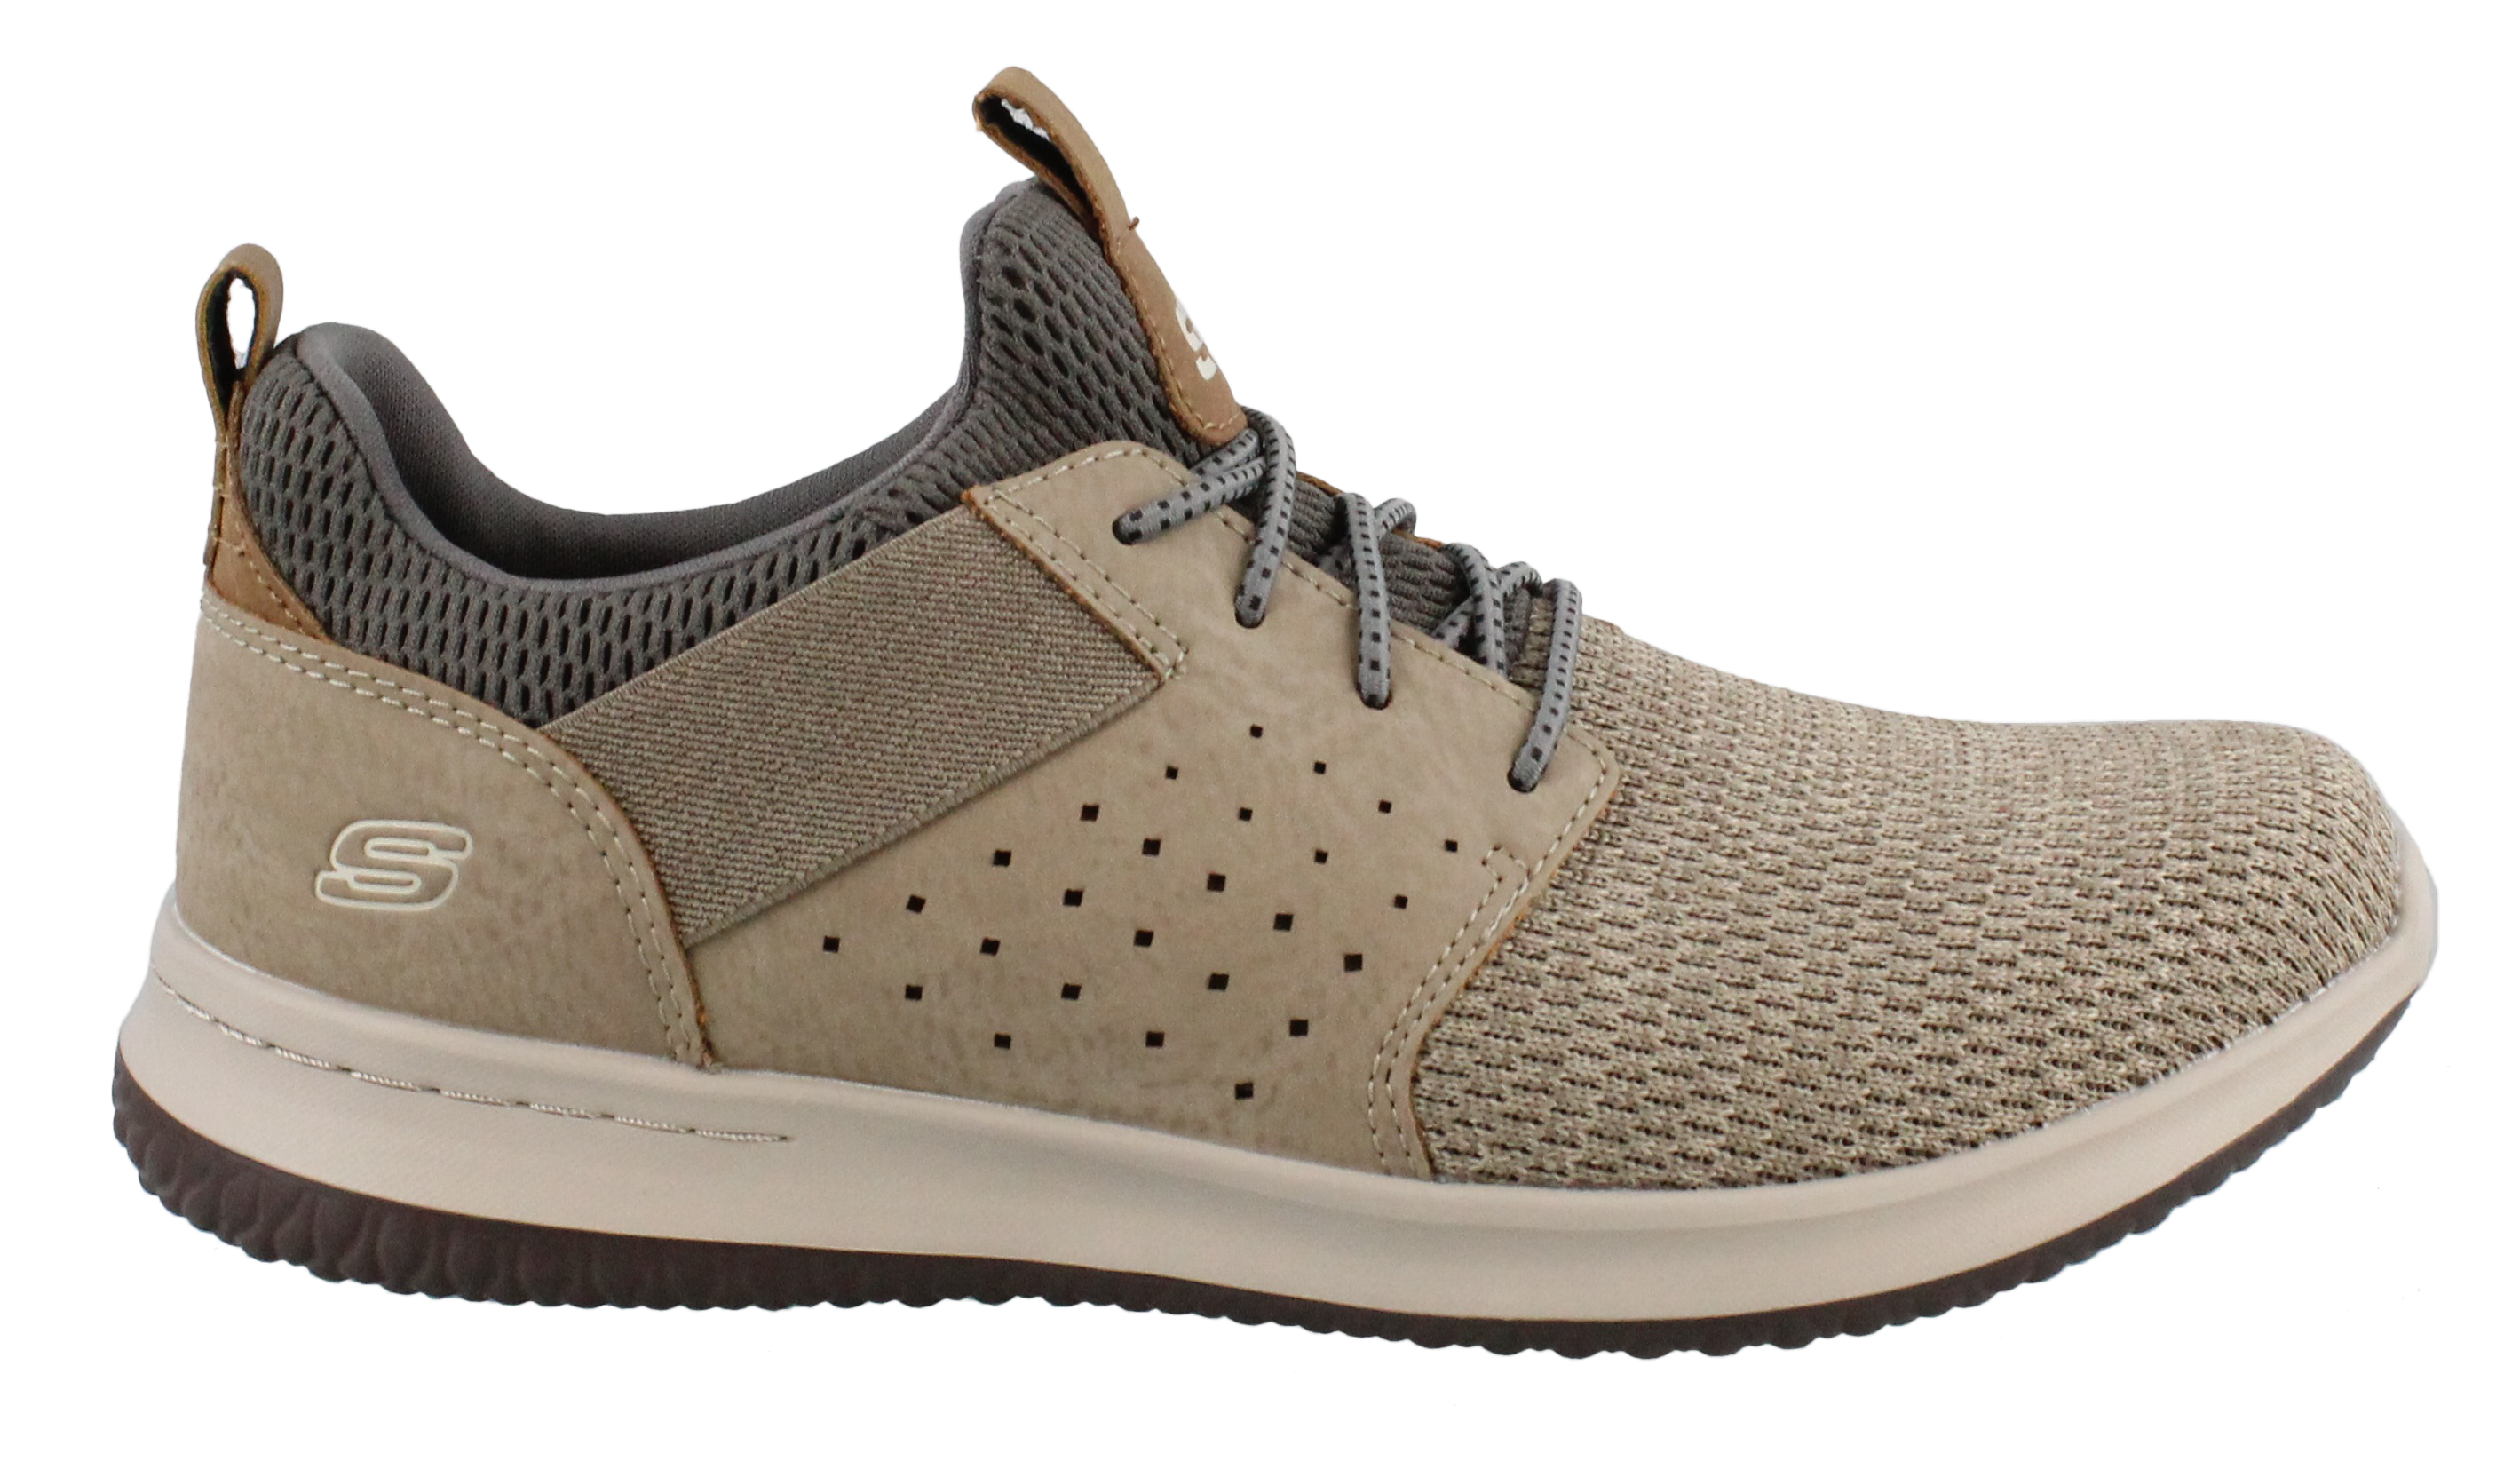 Men's Skechers, Delson Camben Shoes Economical, stylish, and eye-catching shoes